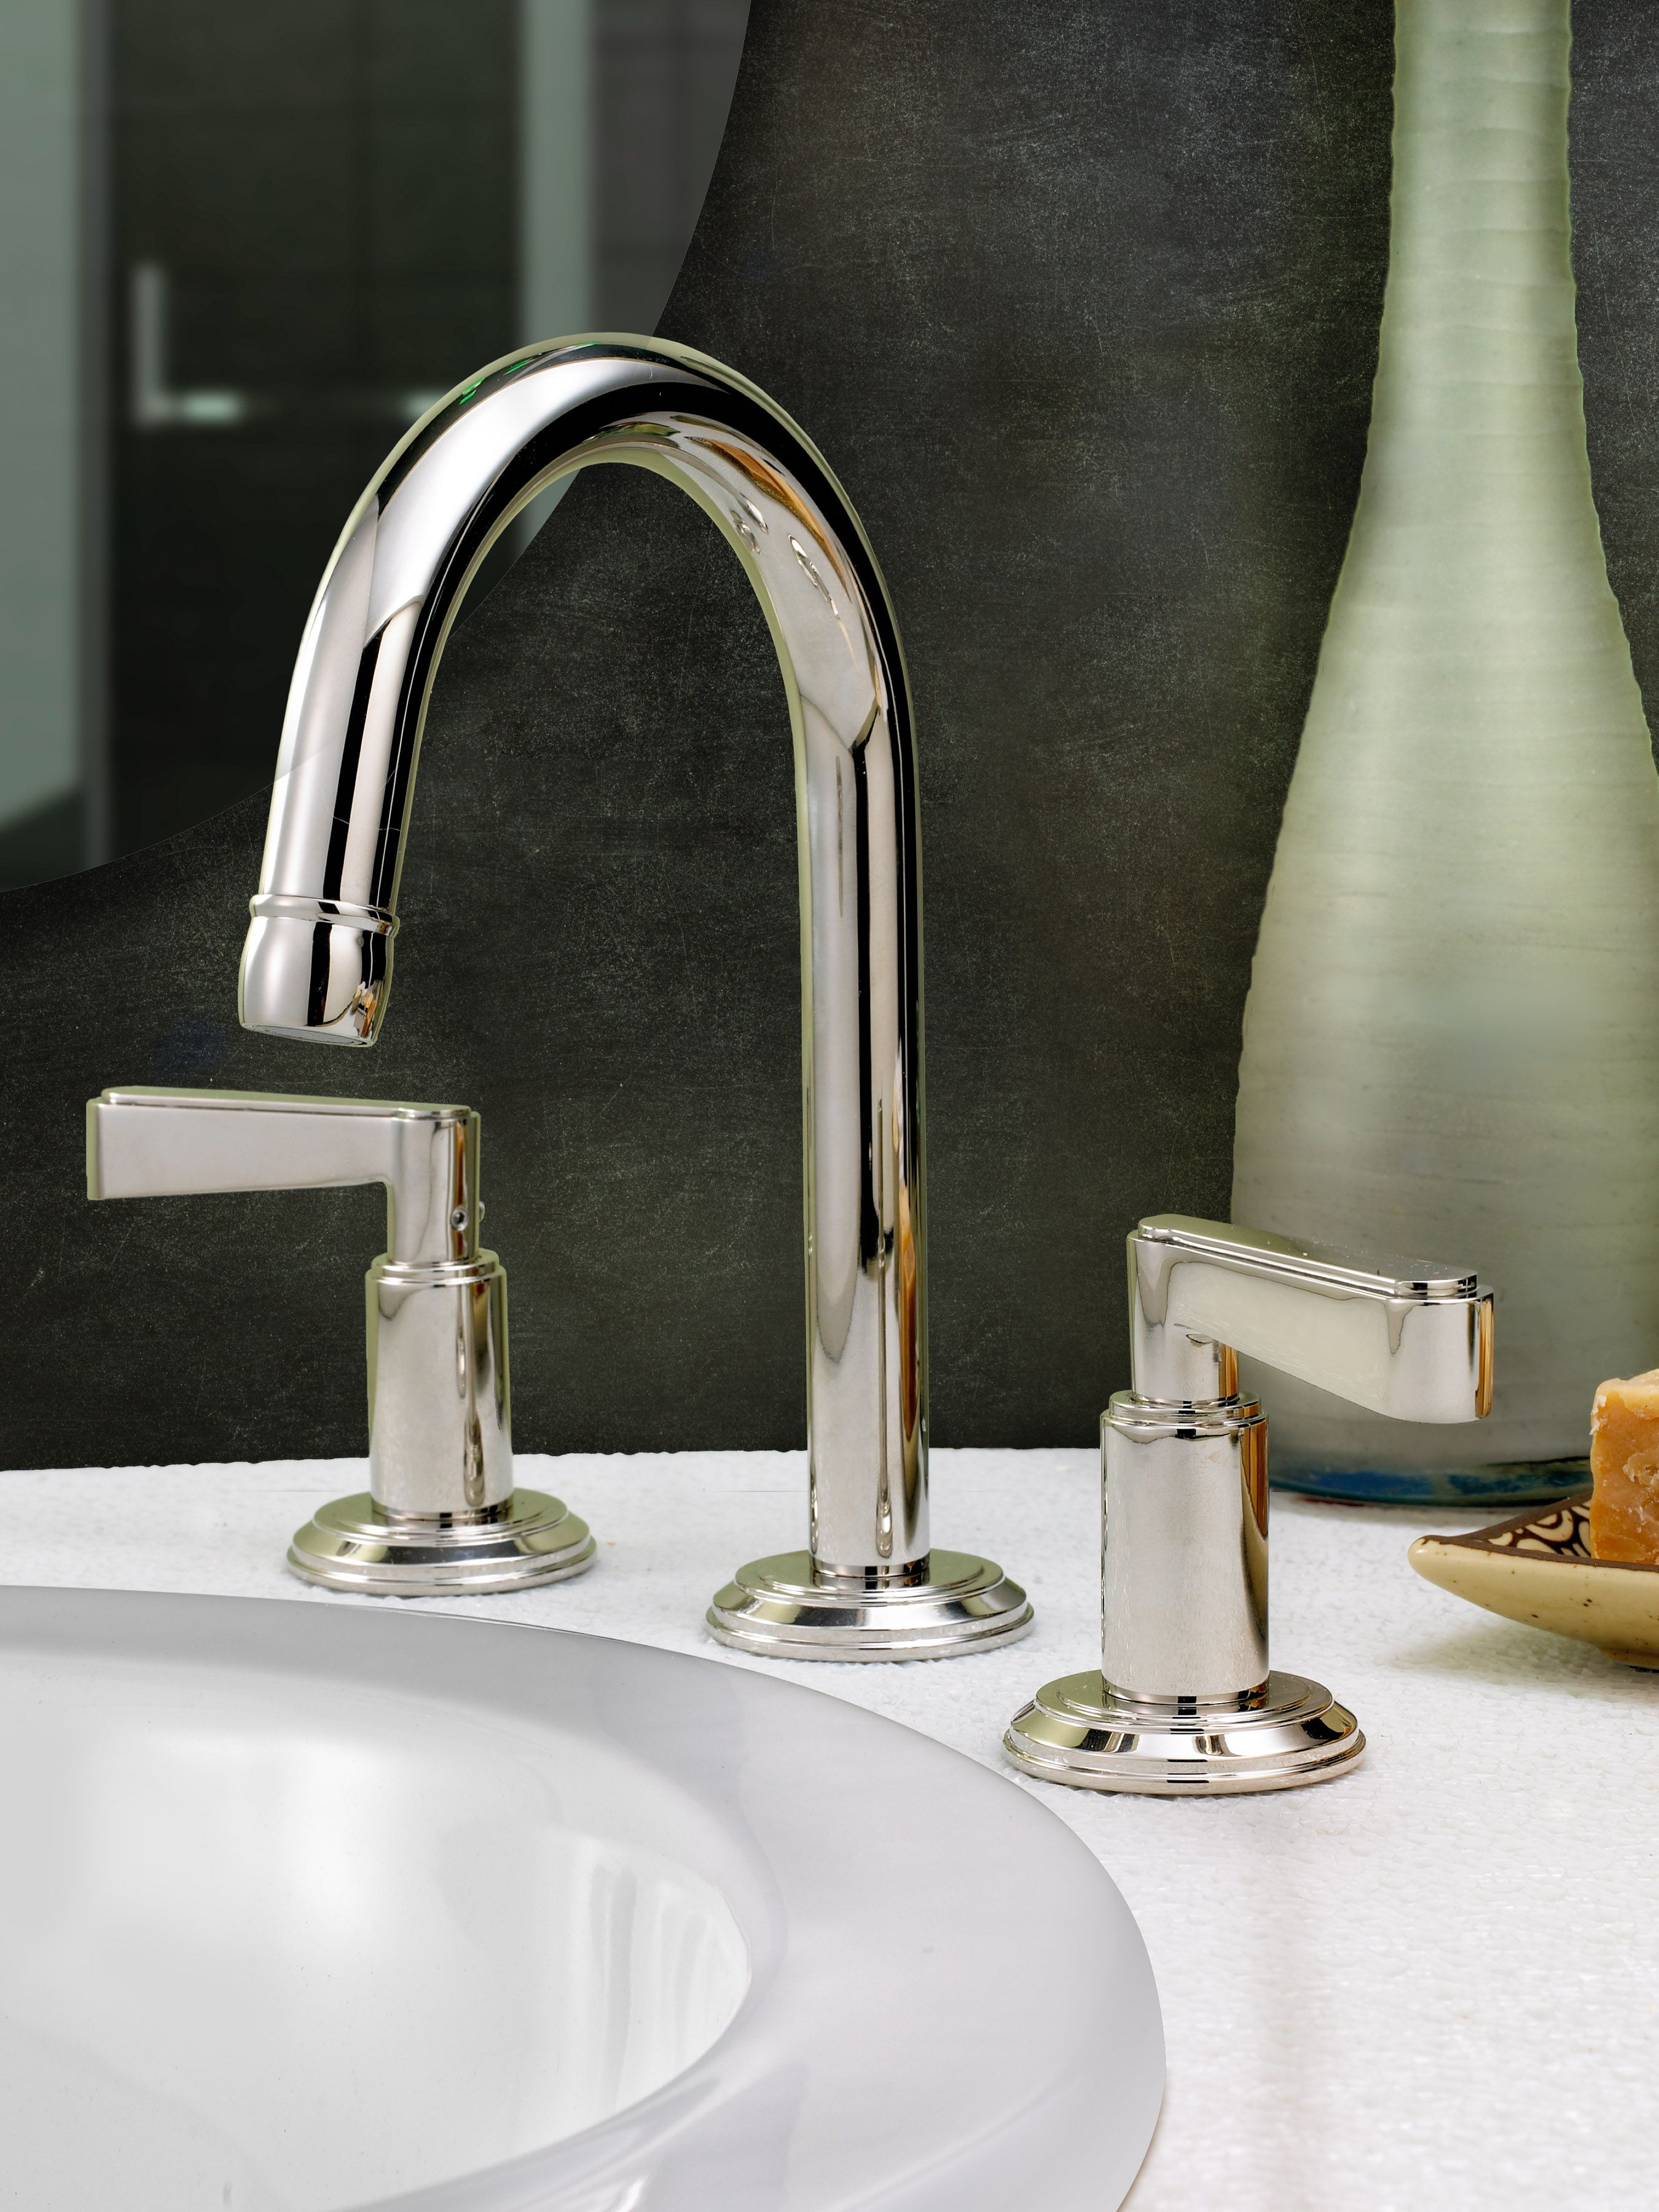 Anika Faucet By Watermark Designs Deck Mount For Guest Bath And Wall Mount For Master Kitchen Faucet Design Watermark Design Bath Accessories Design